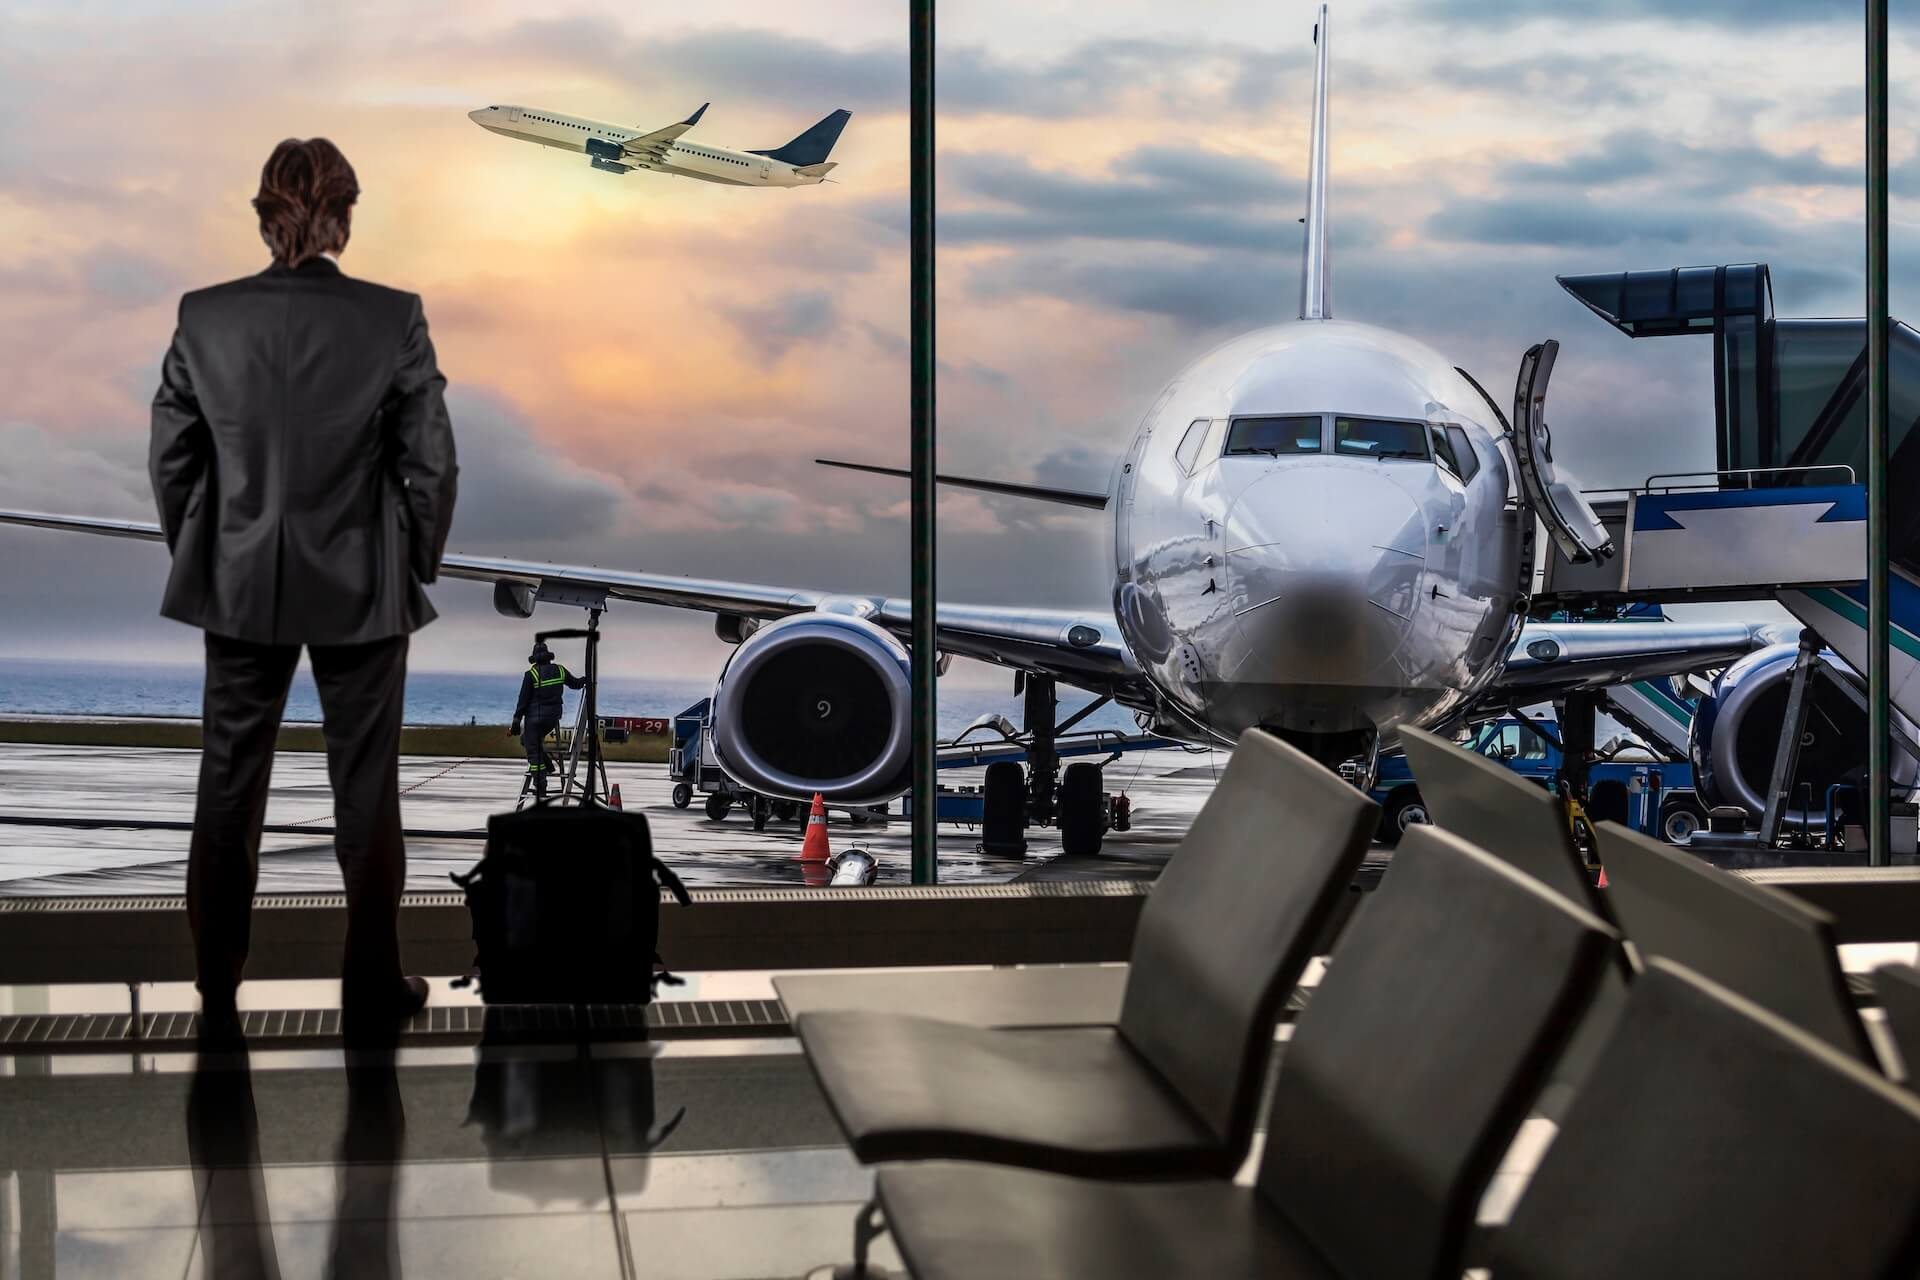 Airlines unable to cut costs deep enough to save jobs